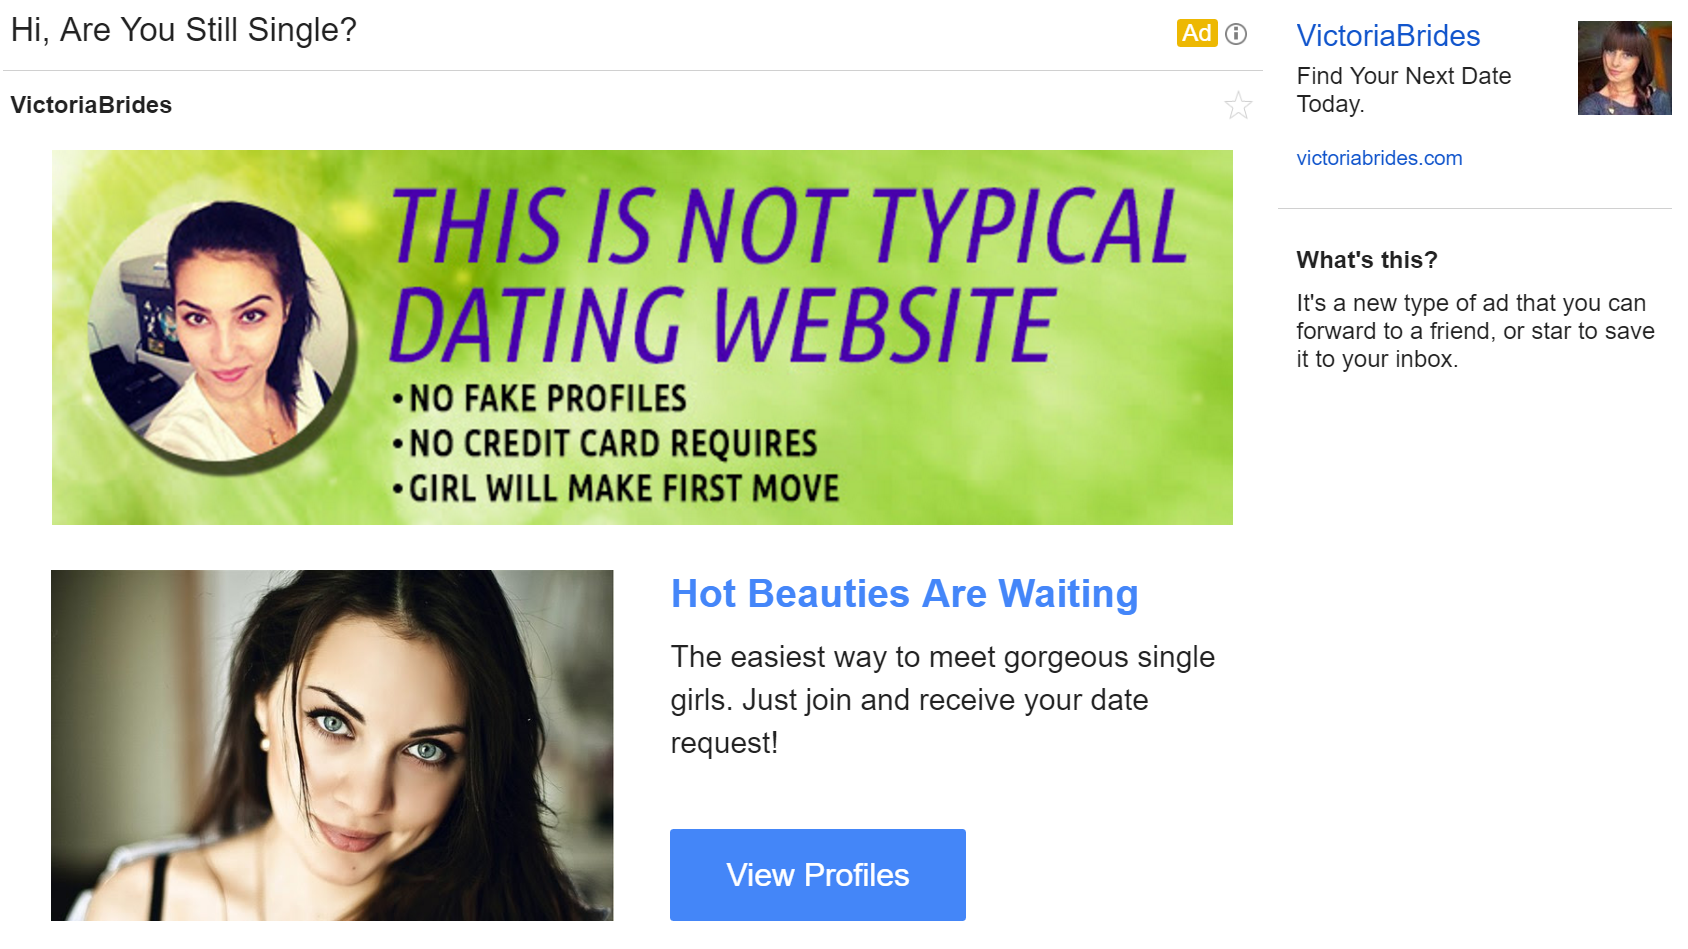 This is not typical dating website